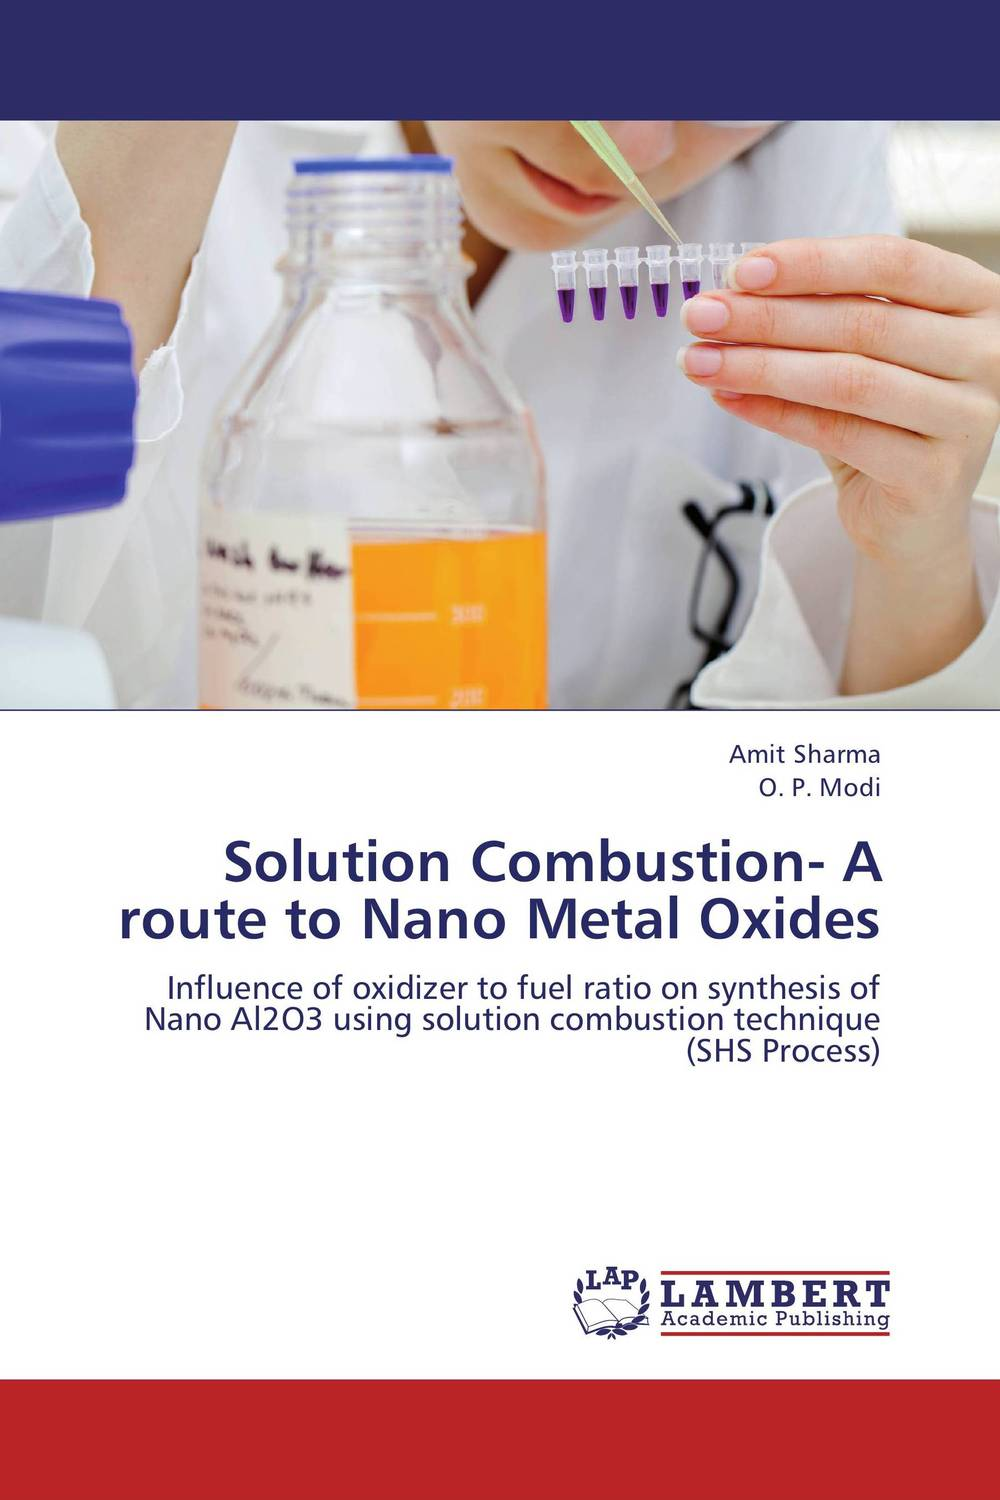 Solution Combustion- A route to Nano Metal Oxides found in brooklyn